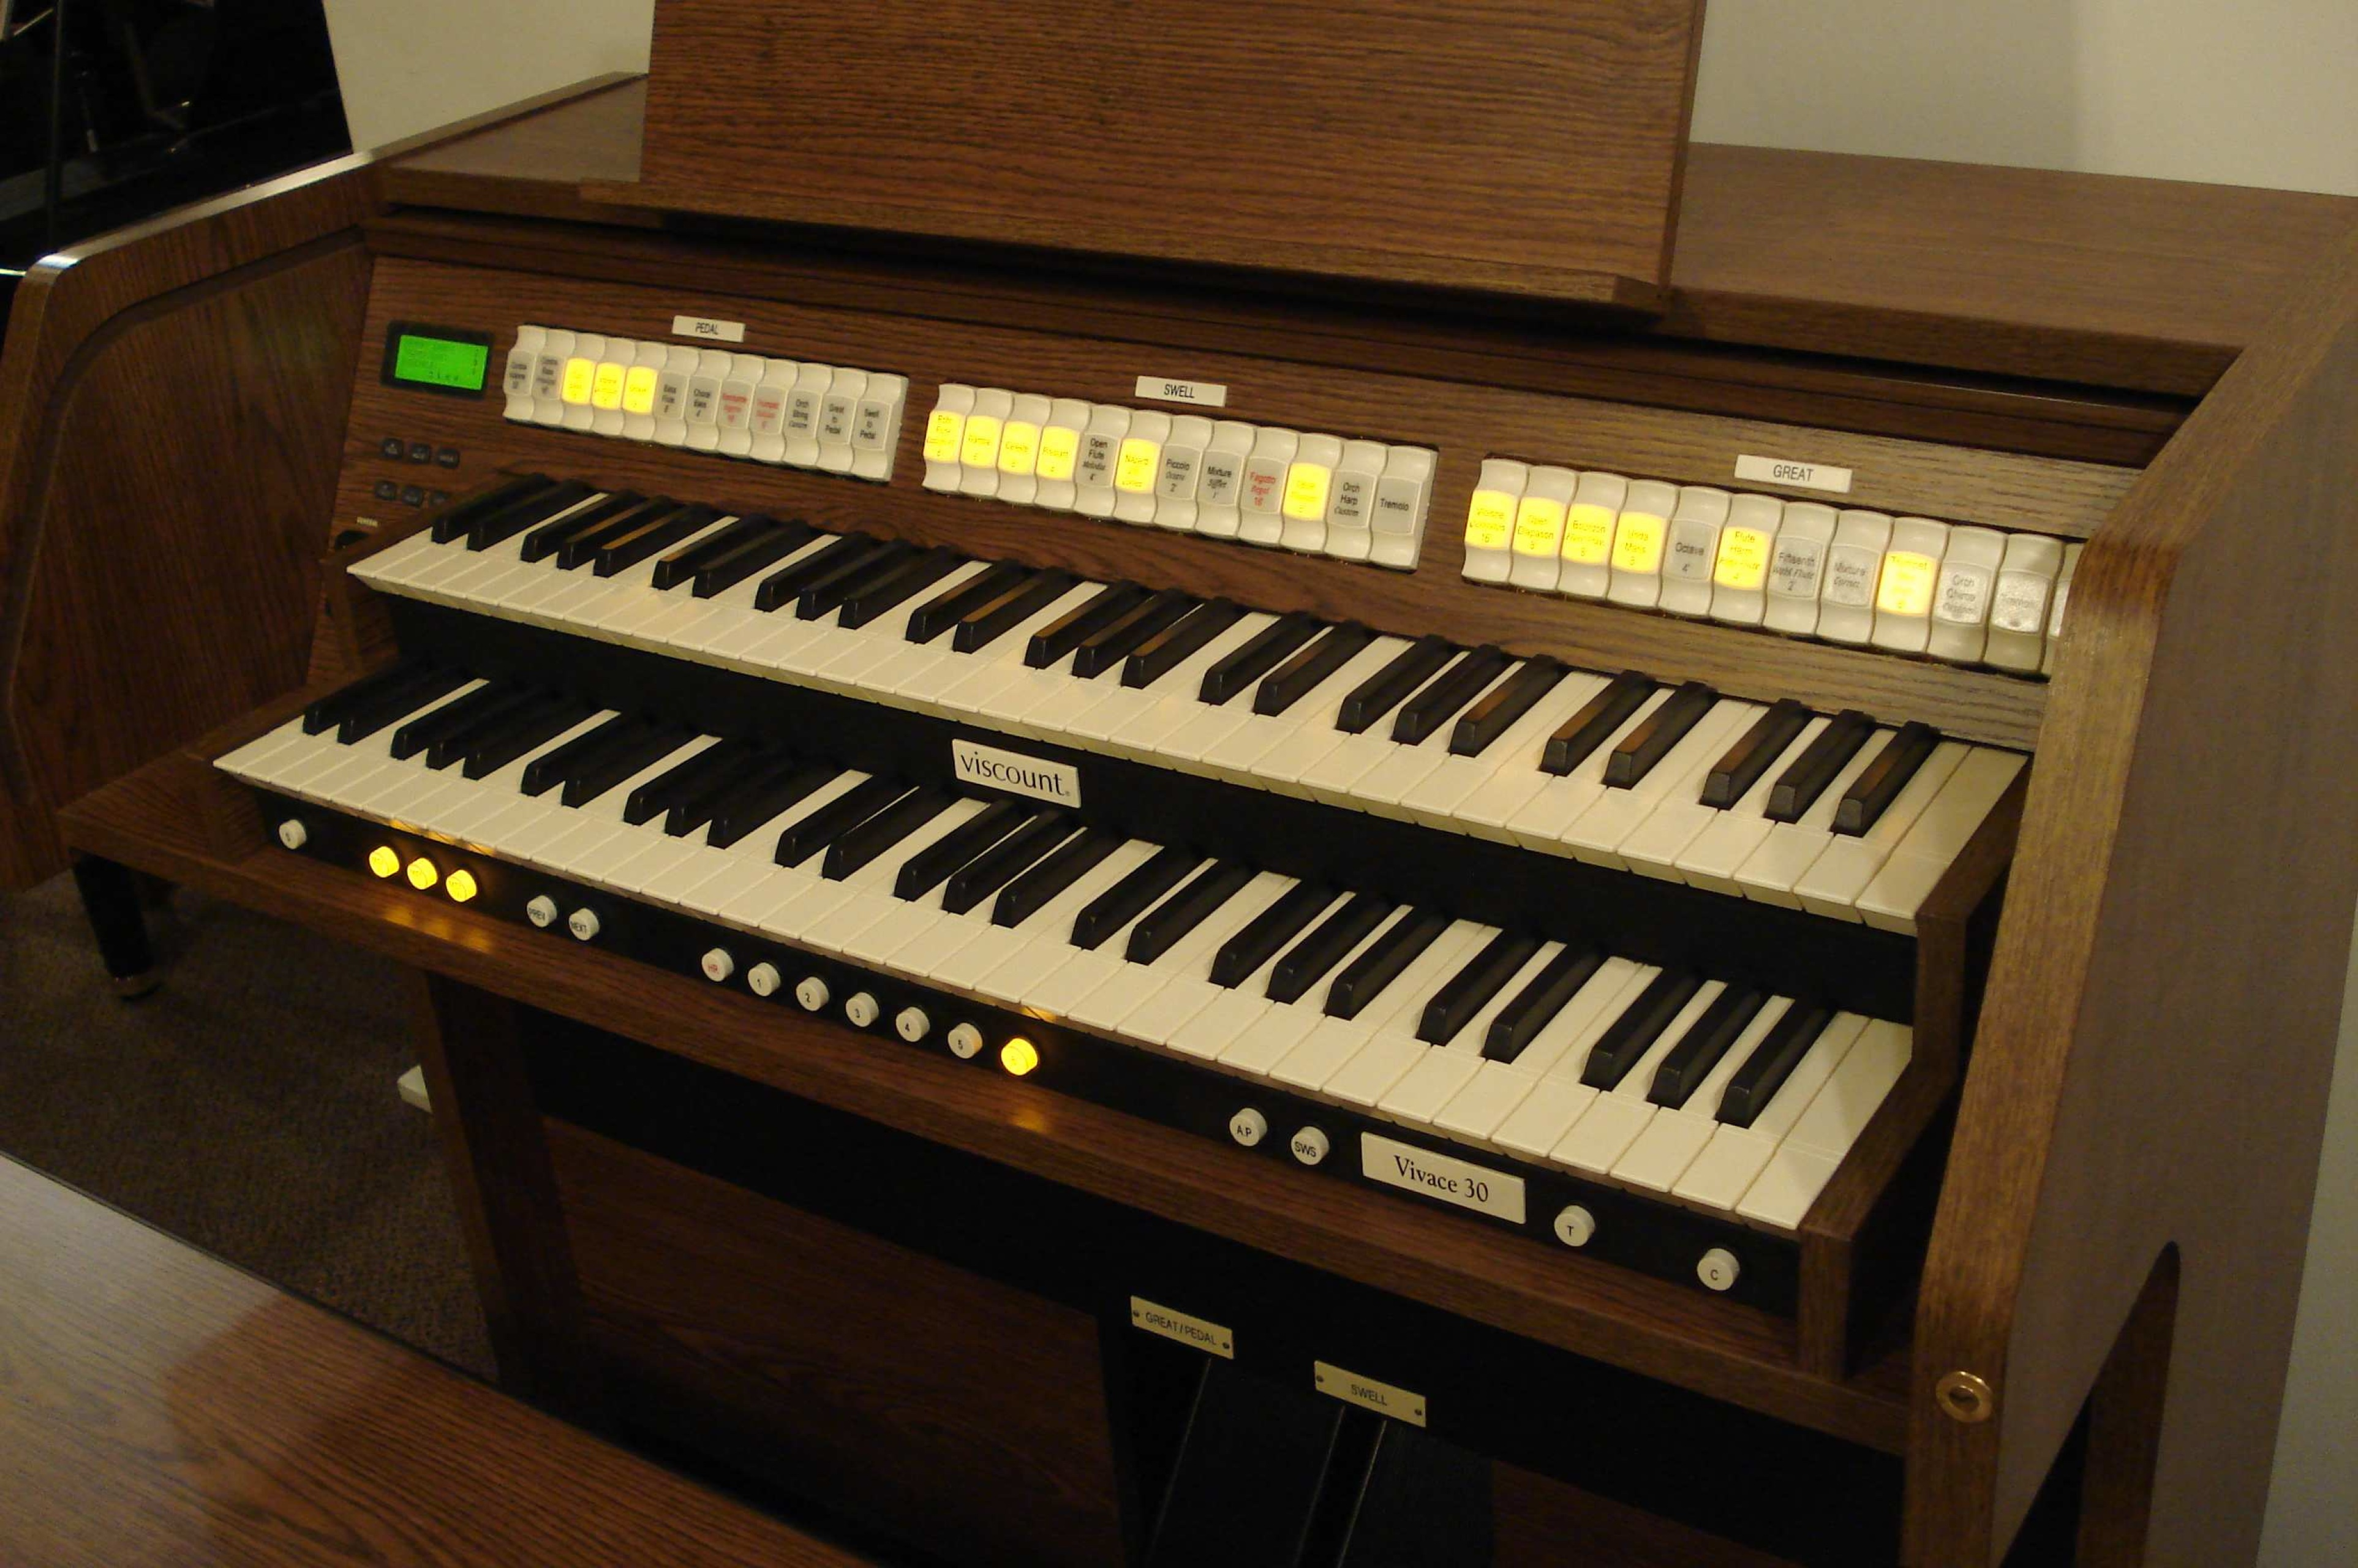 Organ For Sale >> Viscount Vivace 30 Classical Organ For Sale